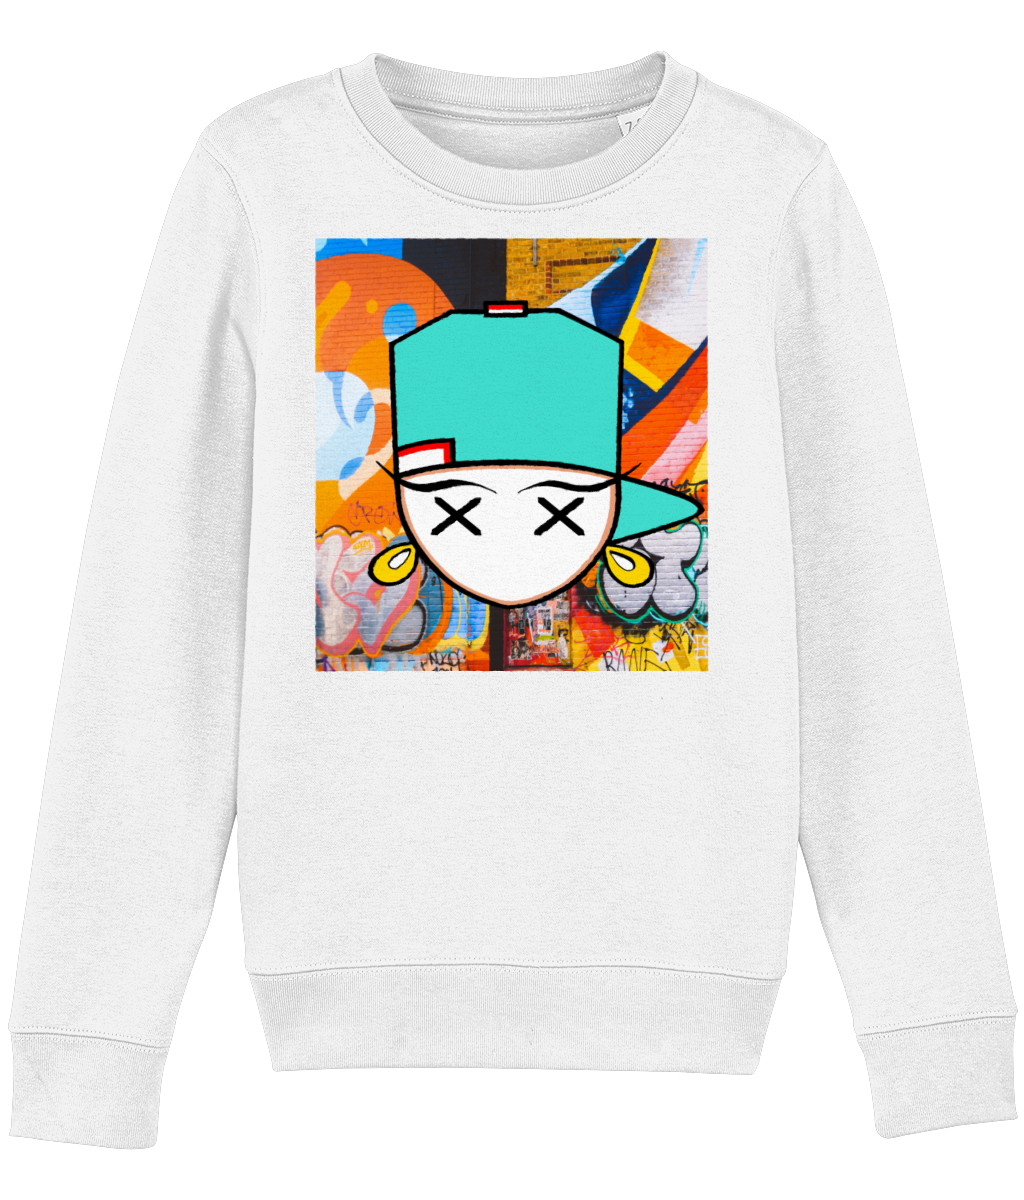 kids sweatshirt Mini Changer 24gg